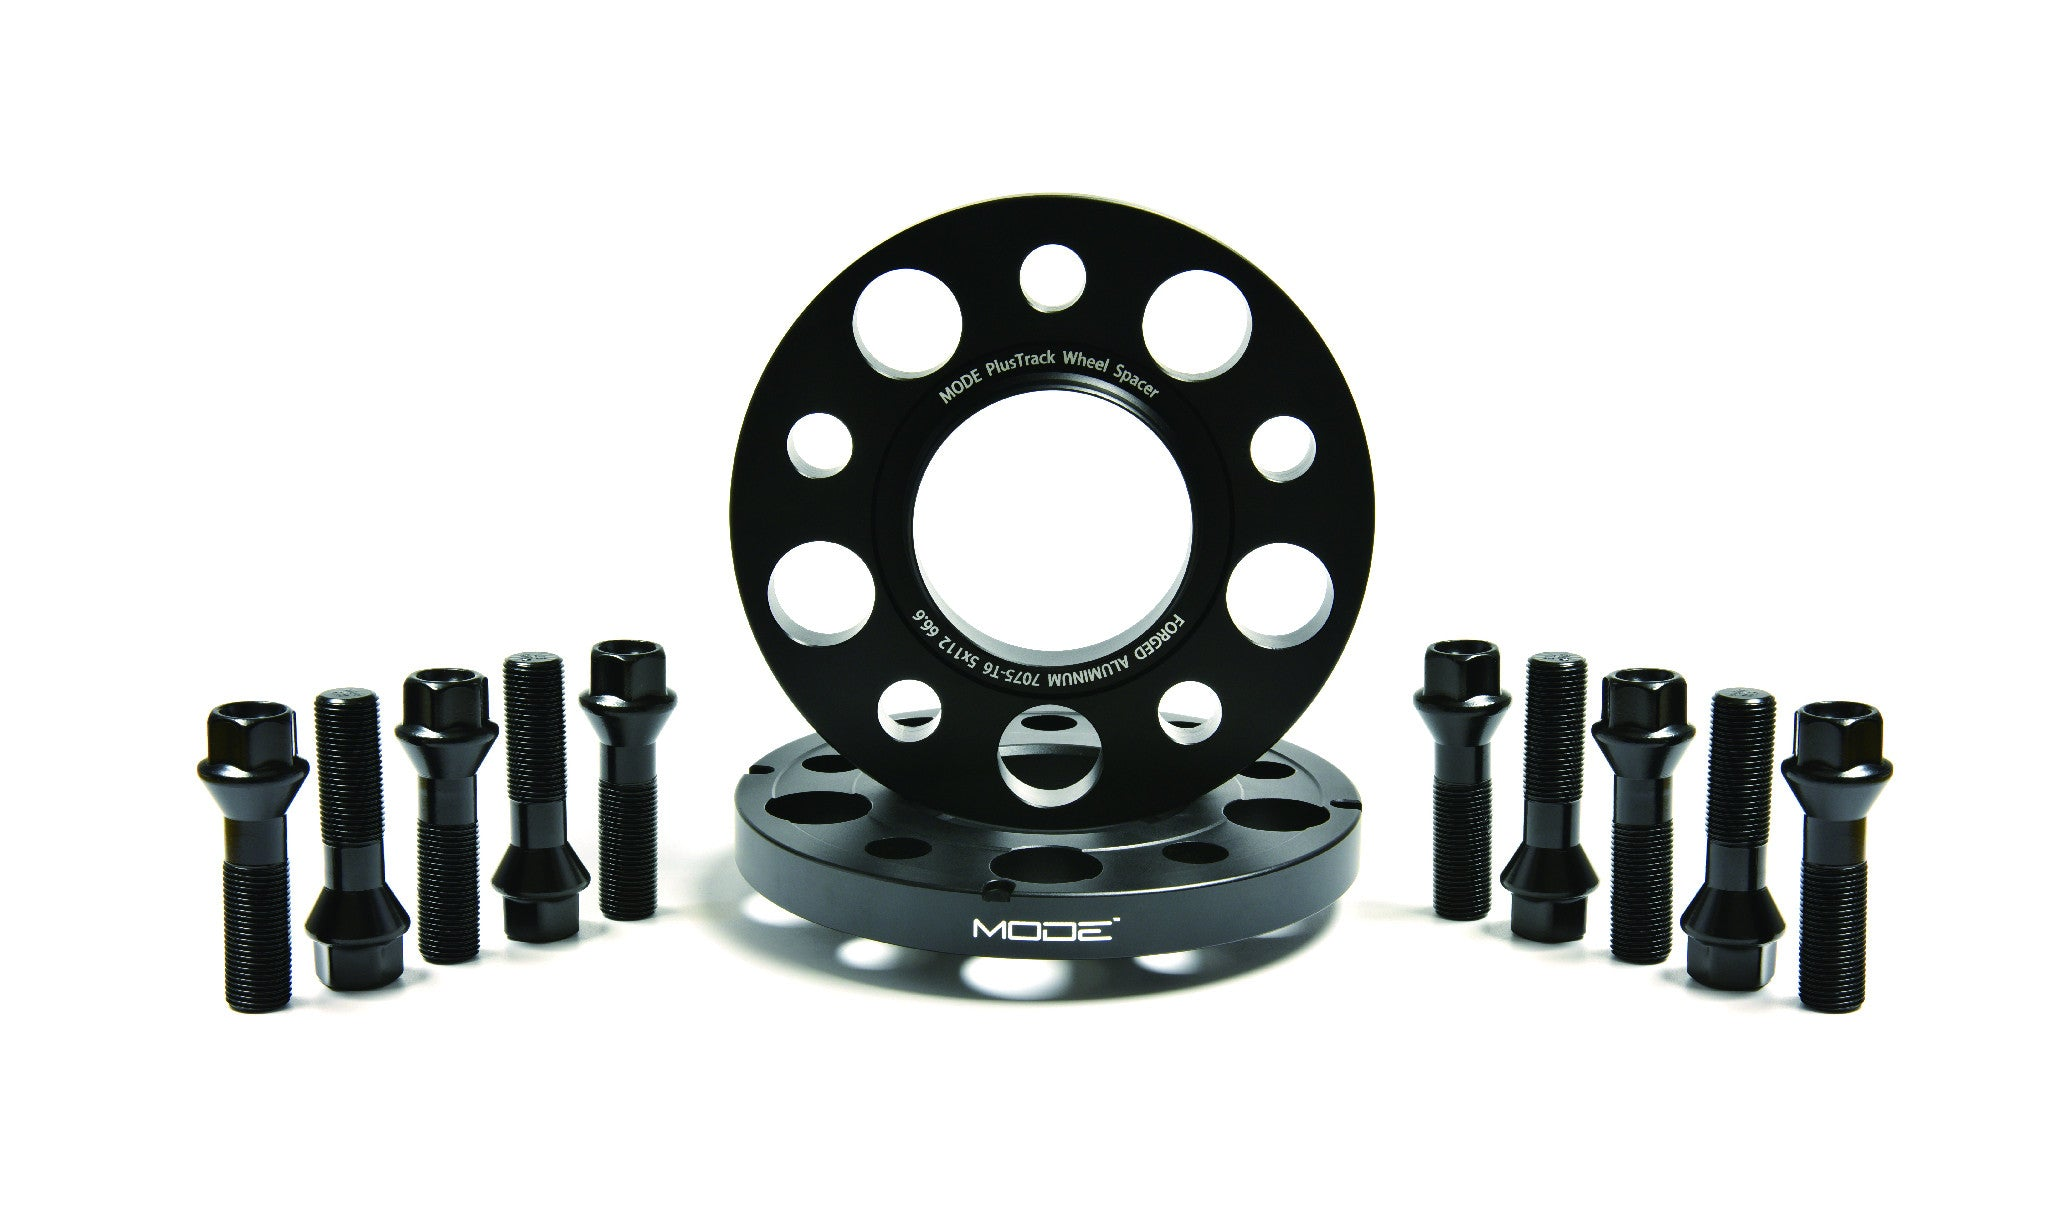 MODE PlusTrack Wheel Spacer Kit 12.5mm PORSCHE (Macan) - MODE Auto Concepts